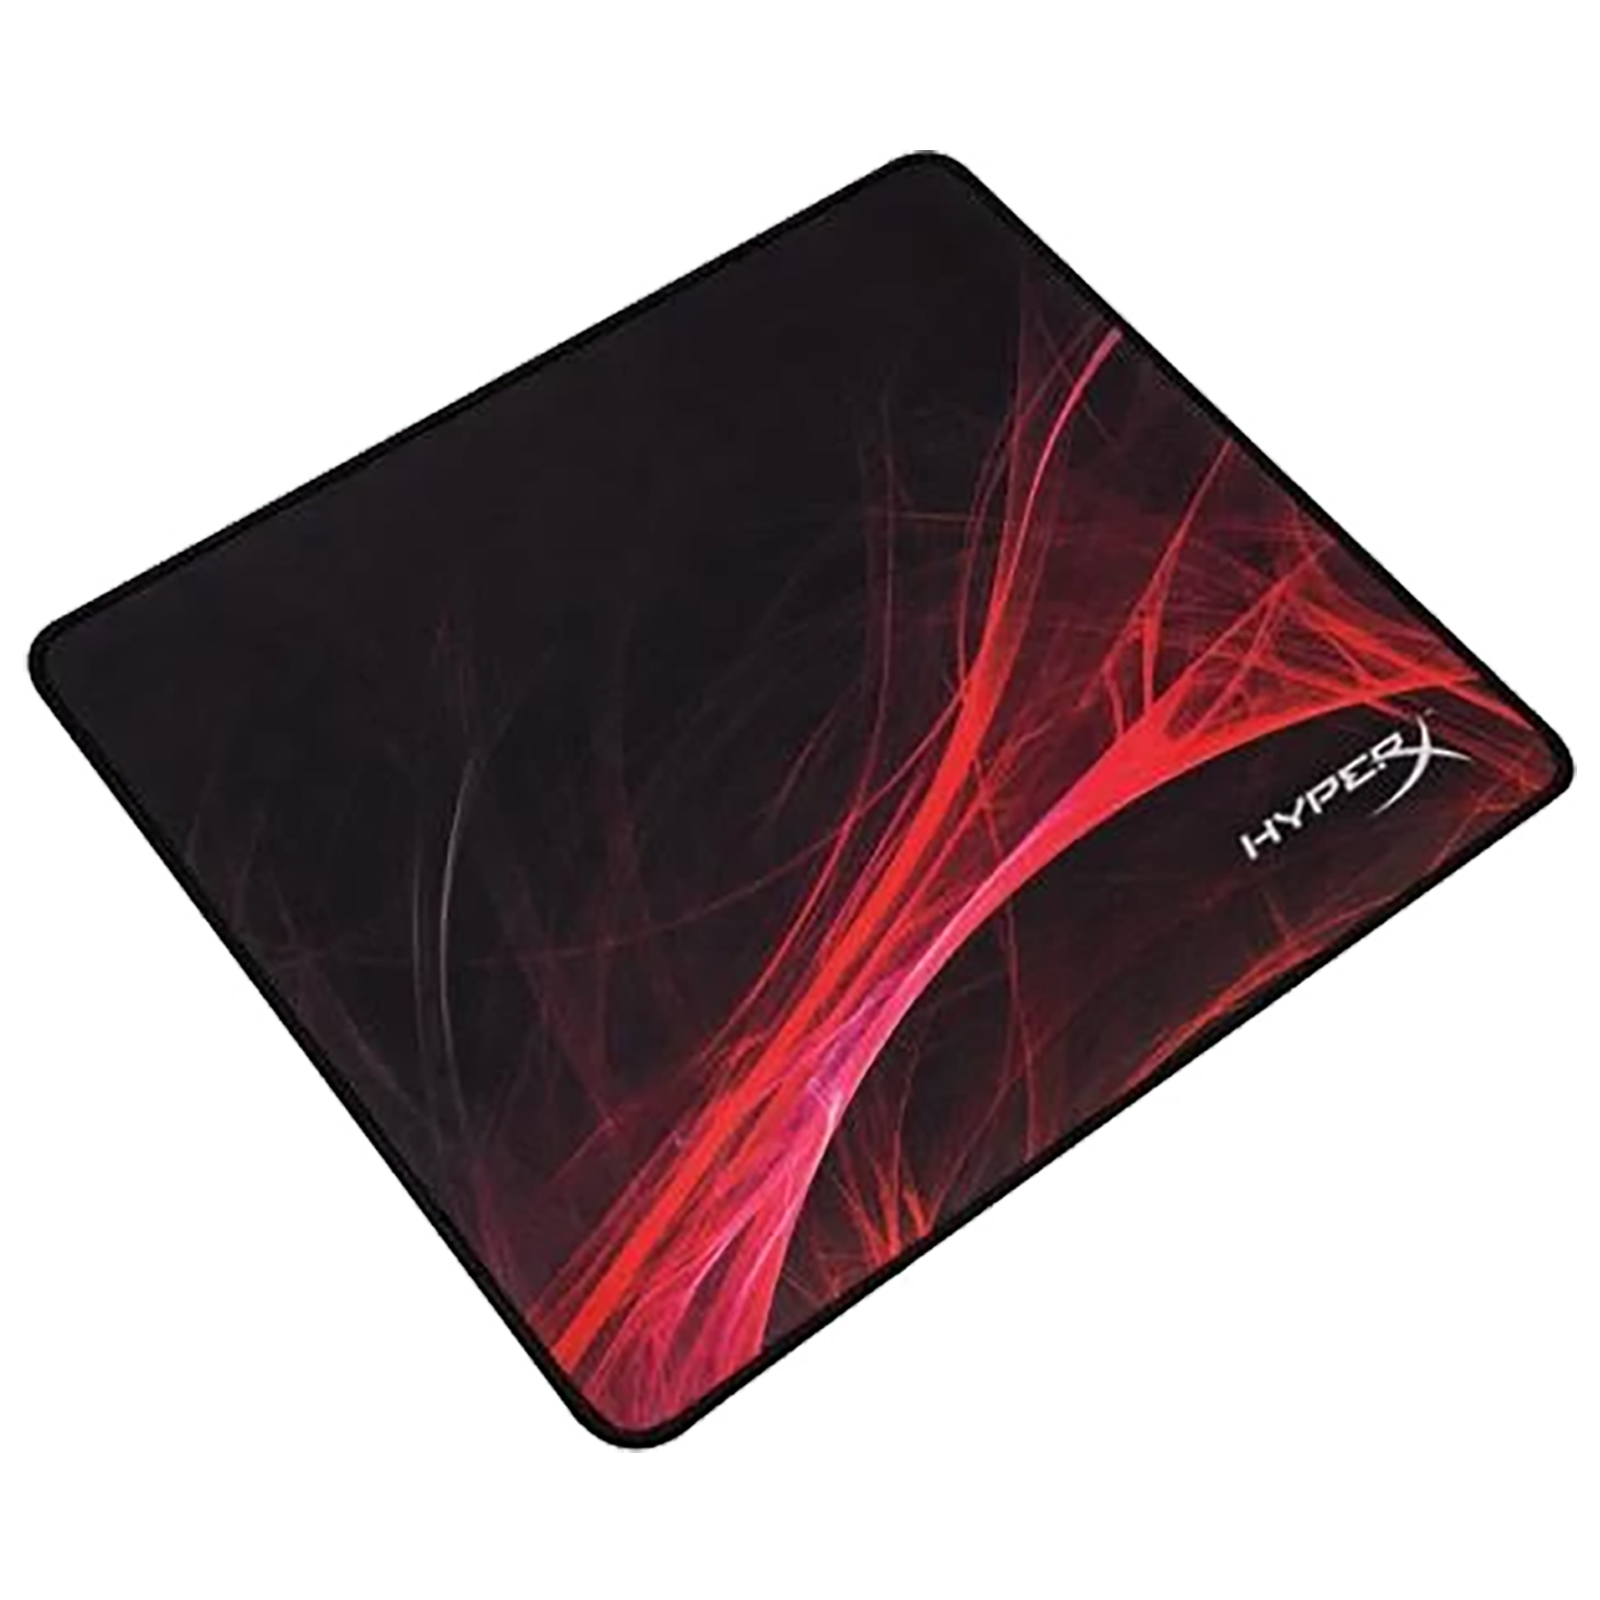 HyperX Gaming Mouse Pad For Gaming Mouse (Seamless Anti-fray Stitched Edges, HX-MPFS-S-SM, Black)_1